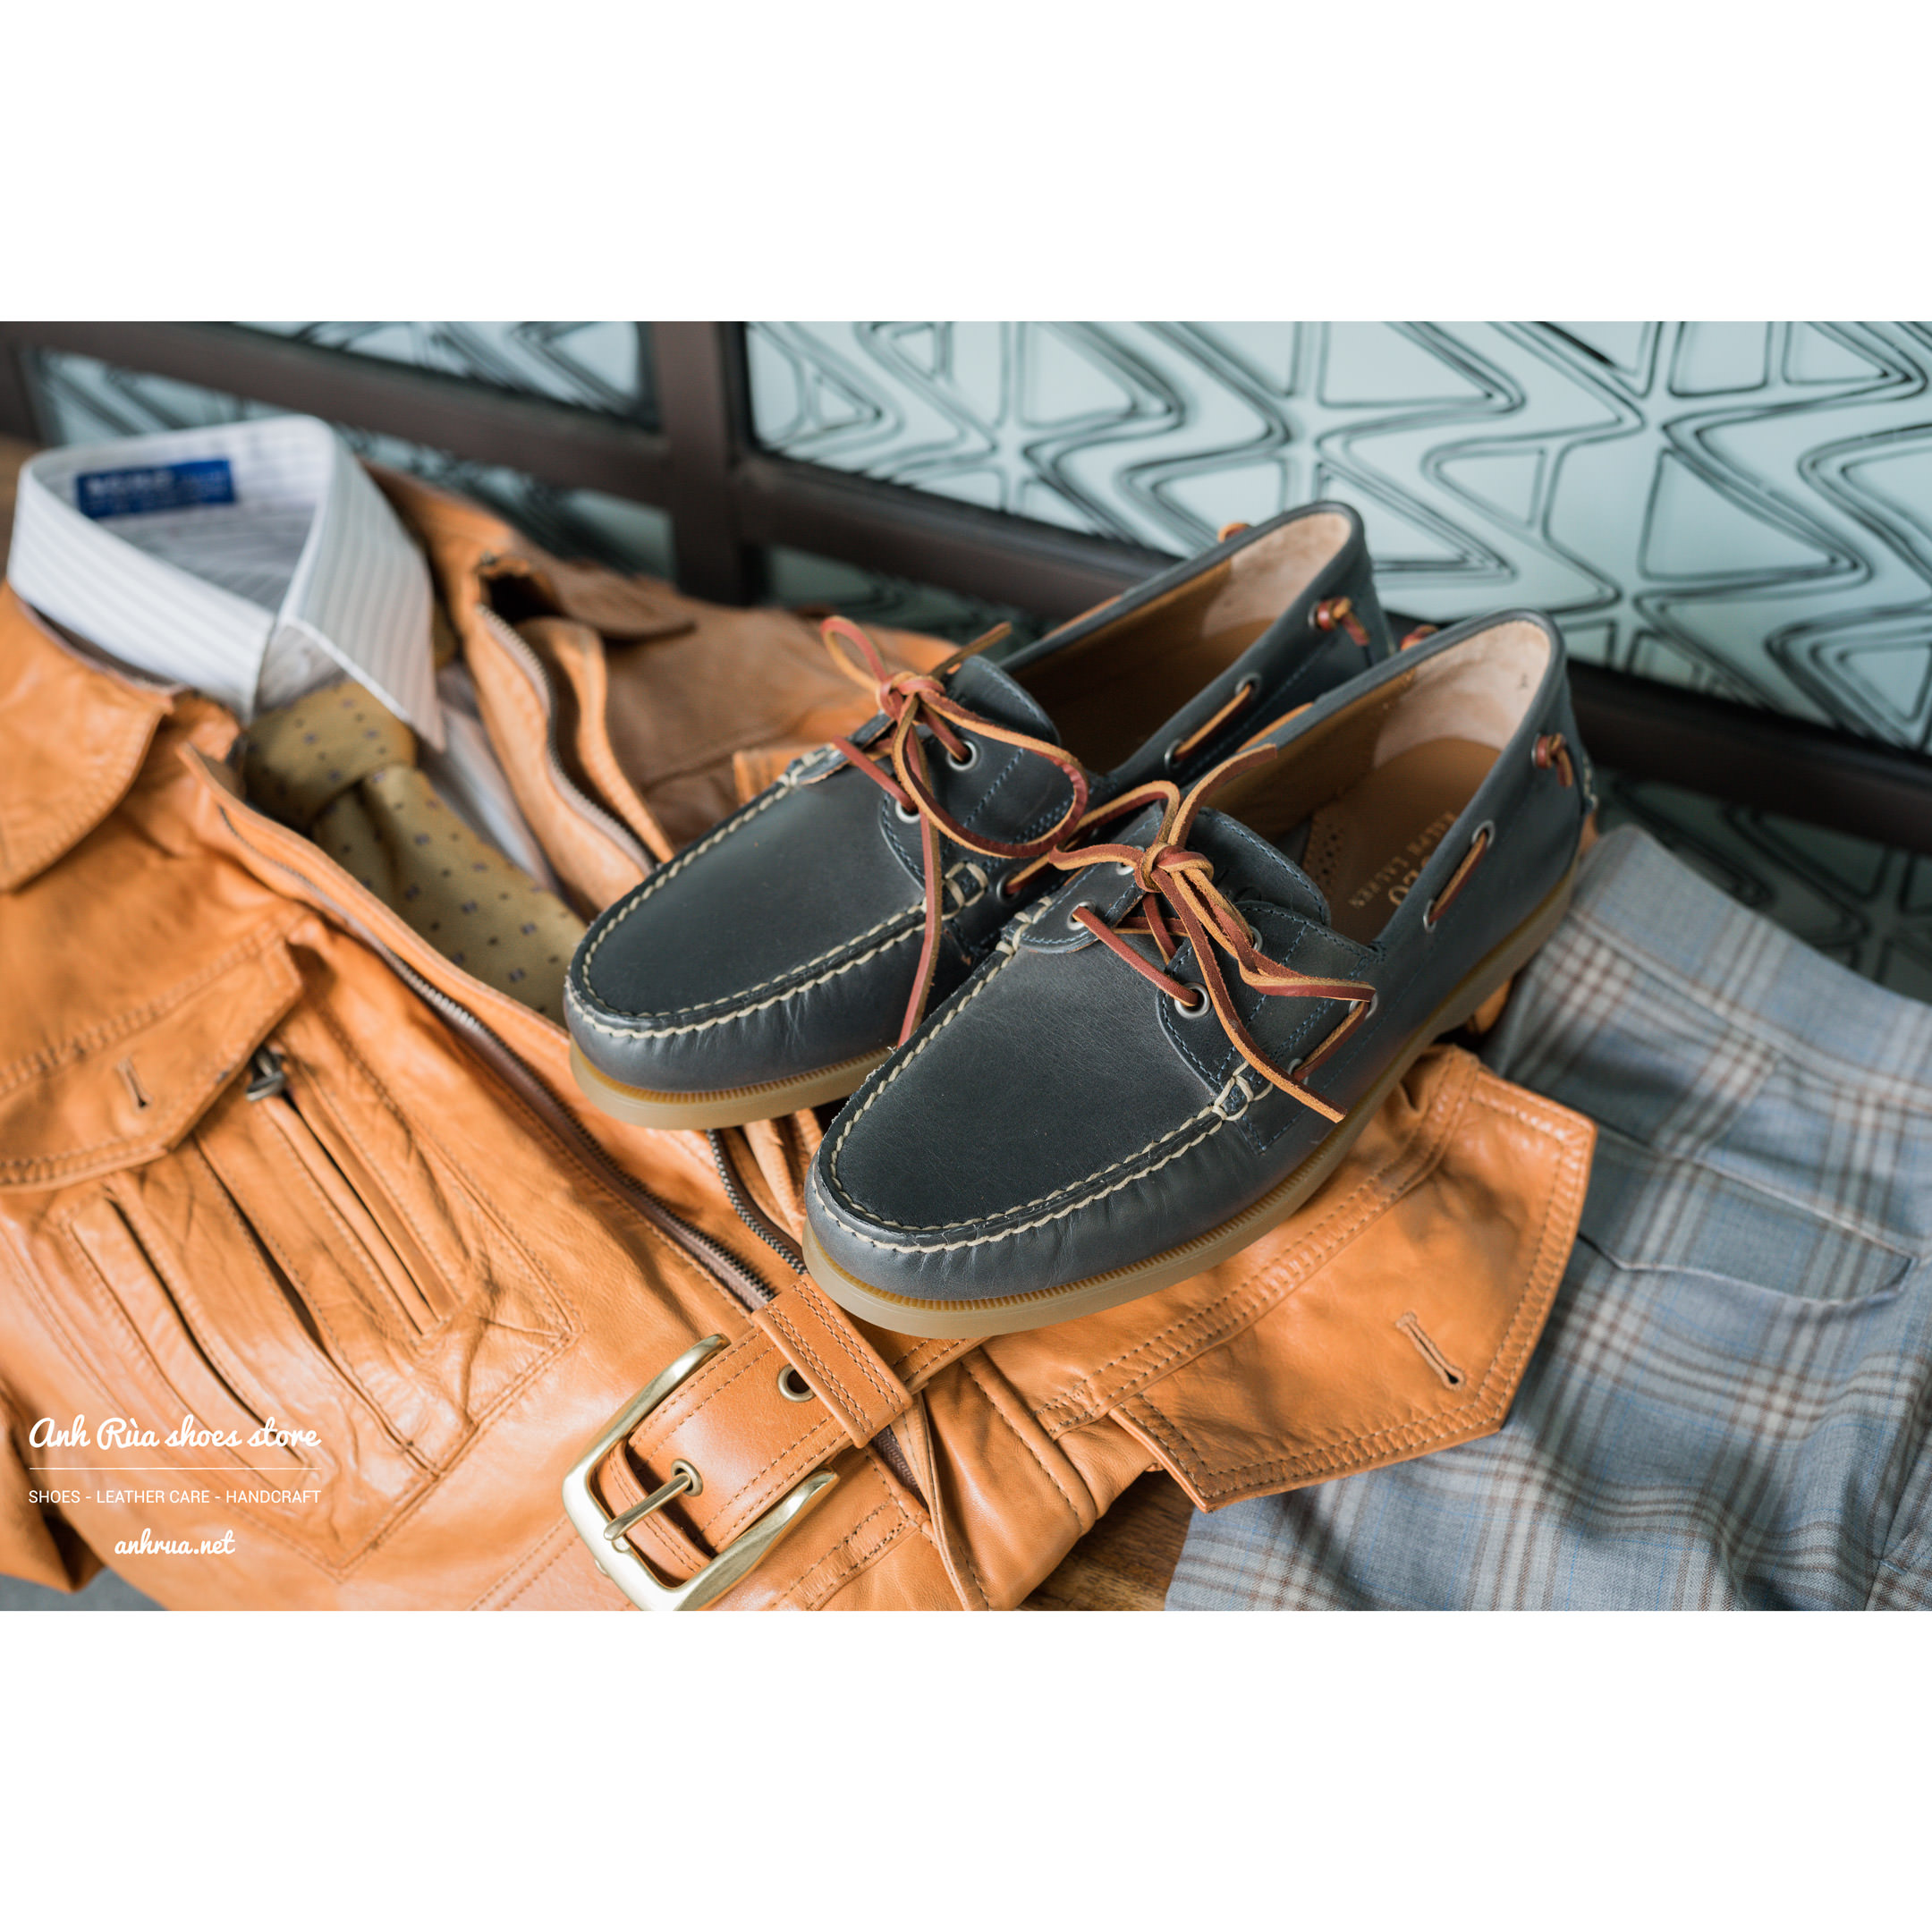 Giày Thuyền Nam Dark Grey Boat Shoes Polo Ralph Lauren